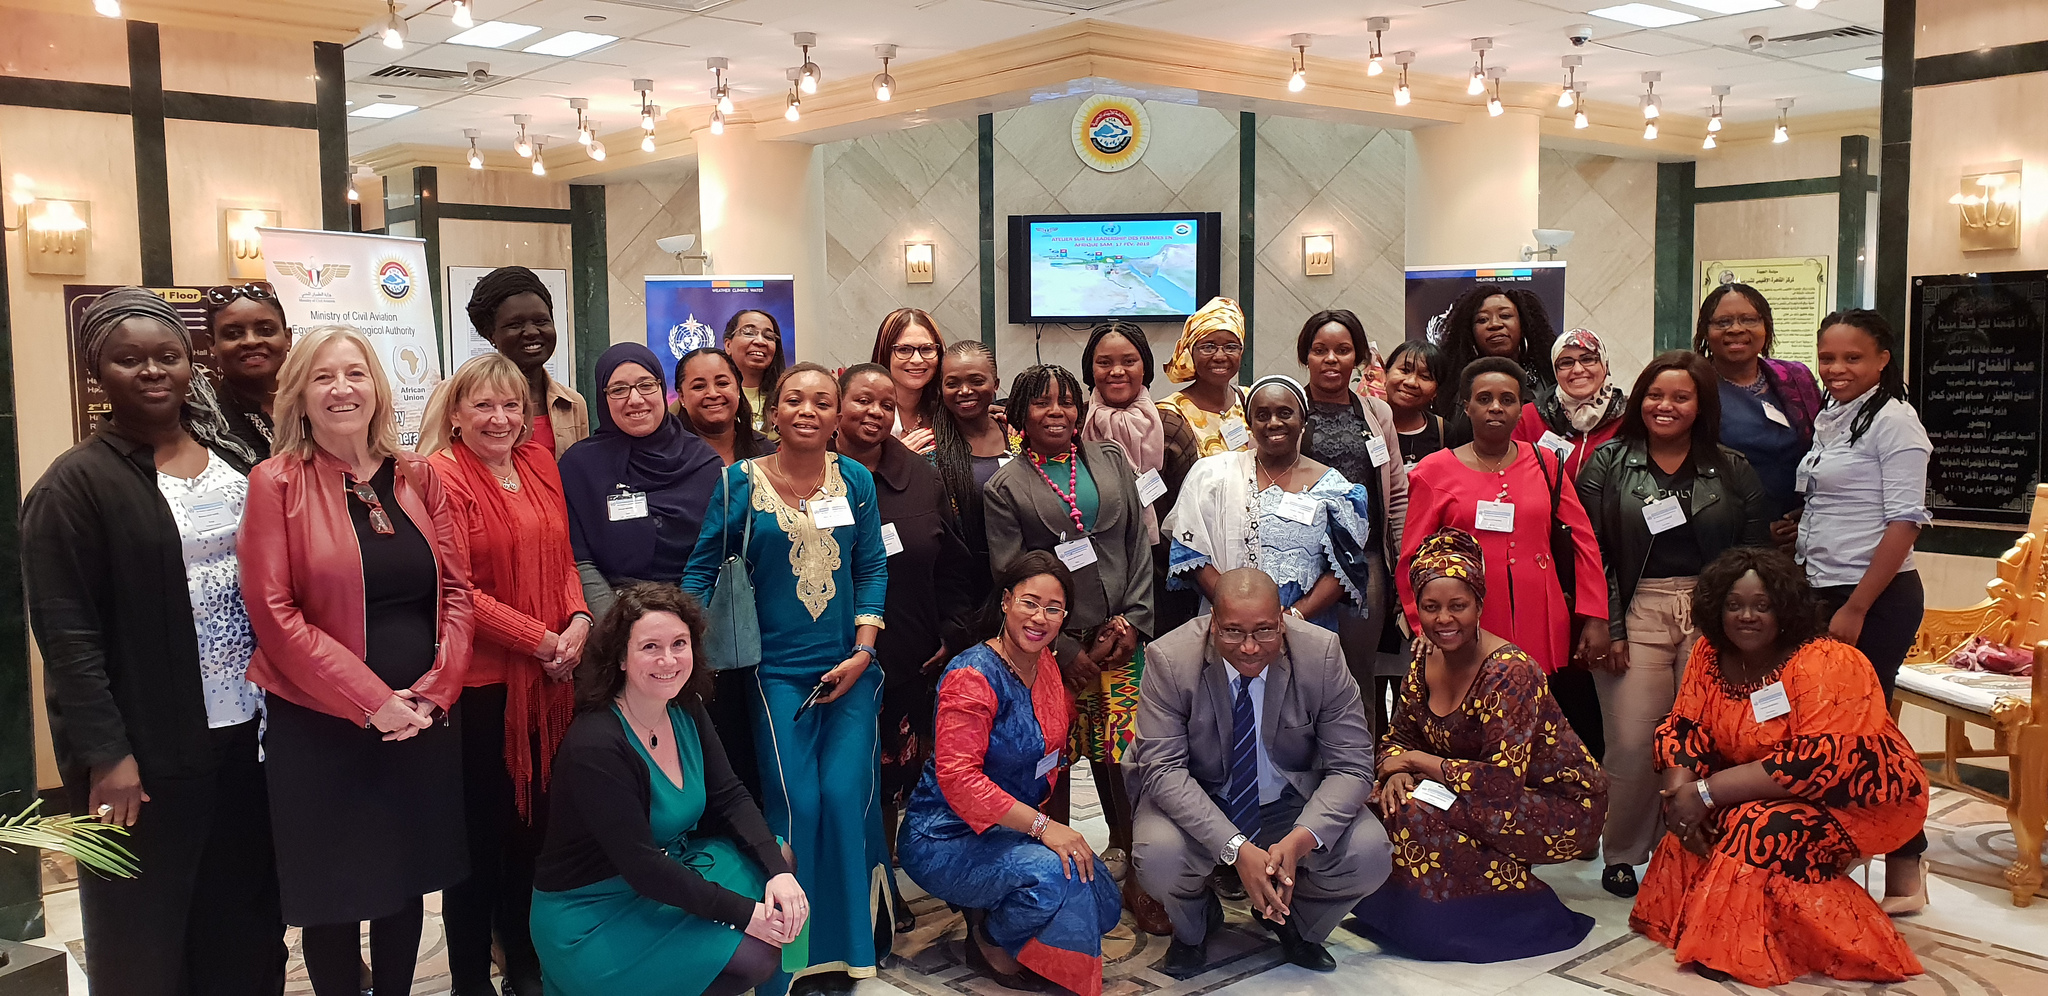 Women's Leadership Workshop at the Regional Association for Africa session in Cairo, Egypt from 16-17 February 2019